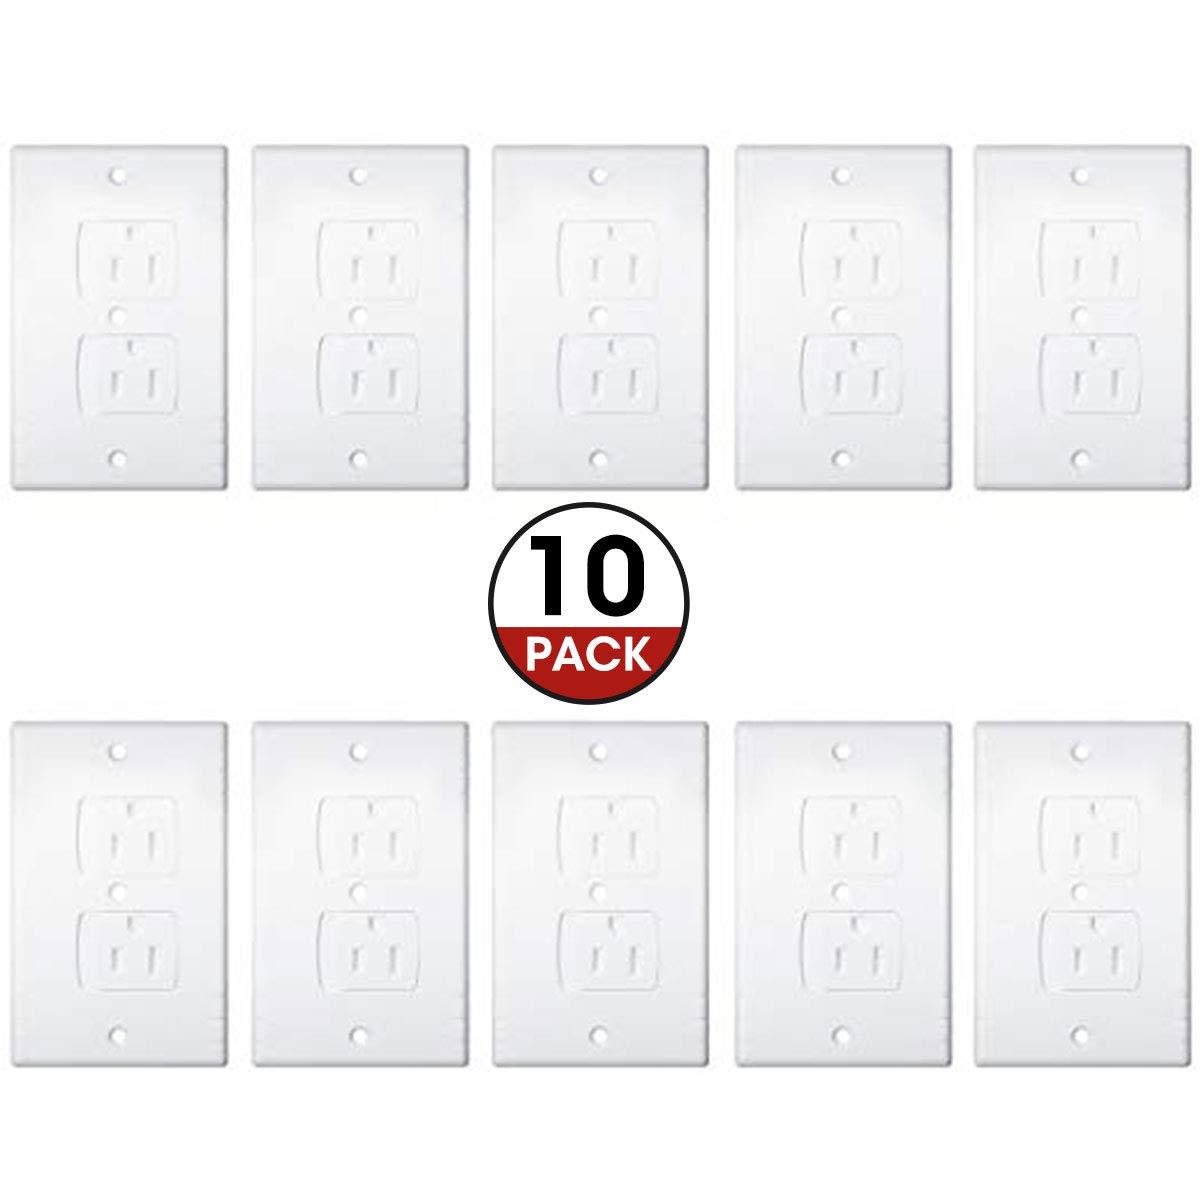 GOCHANGE Universal Self-Closing Electrical Outlet Covers, Child Safety Socket Protector, Hardware Included (10 Pack)